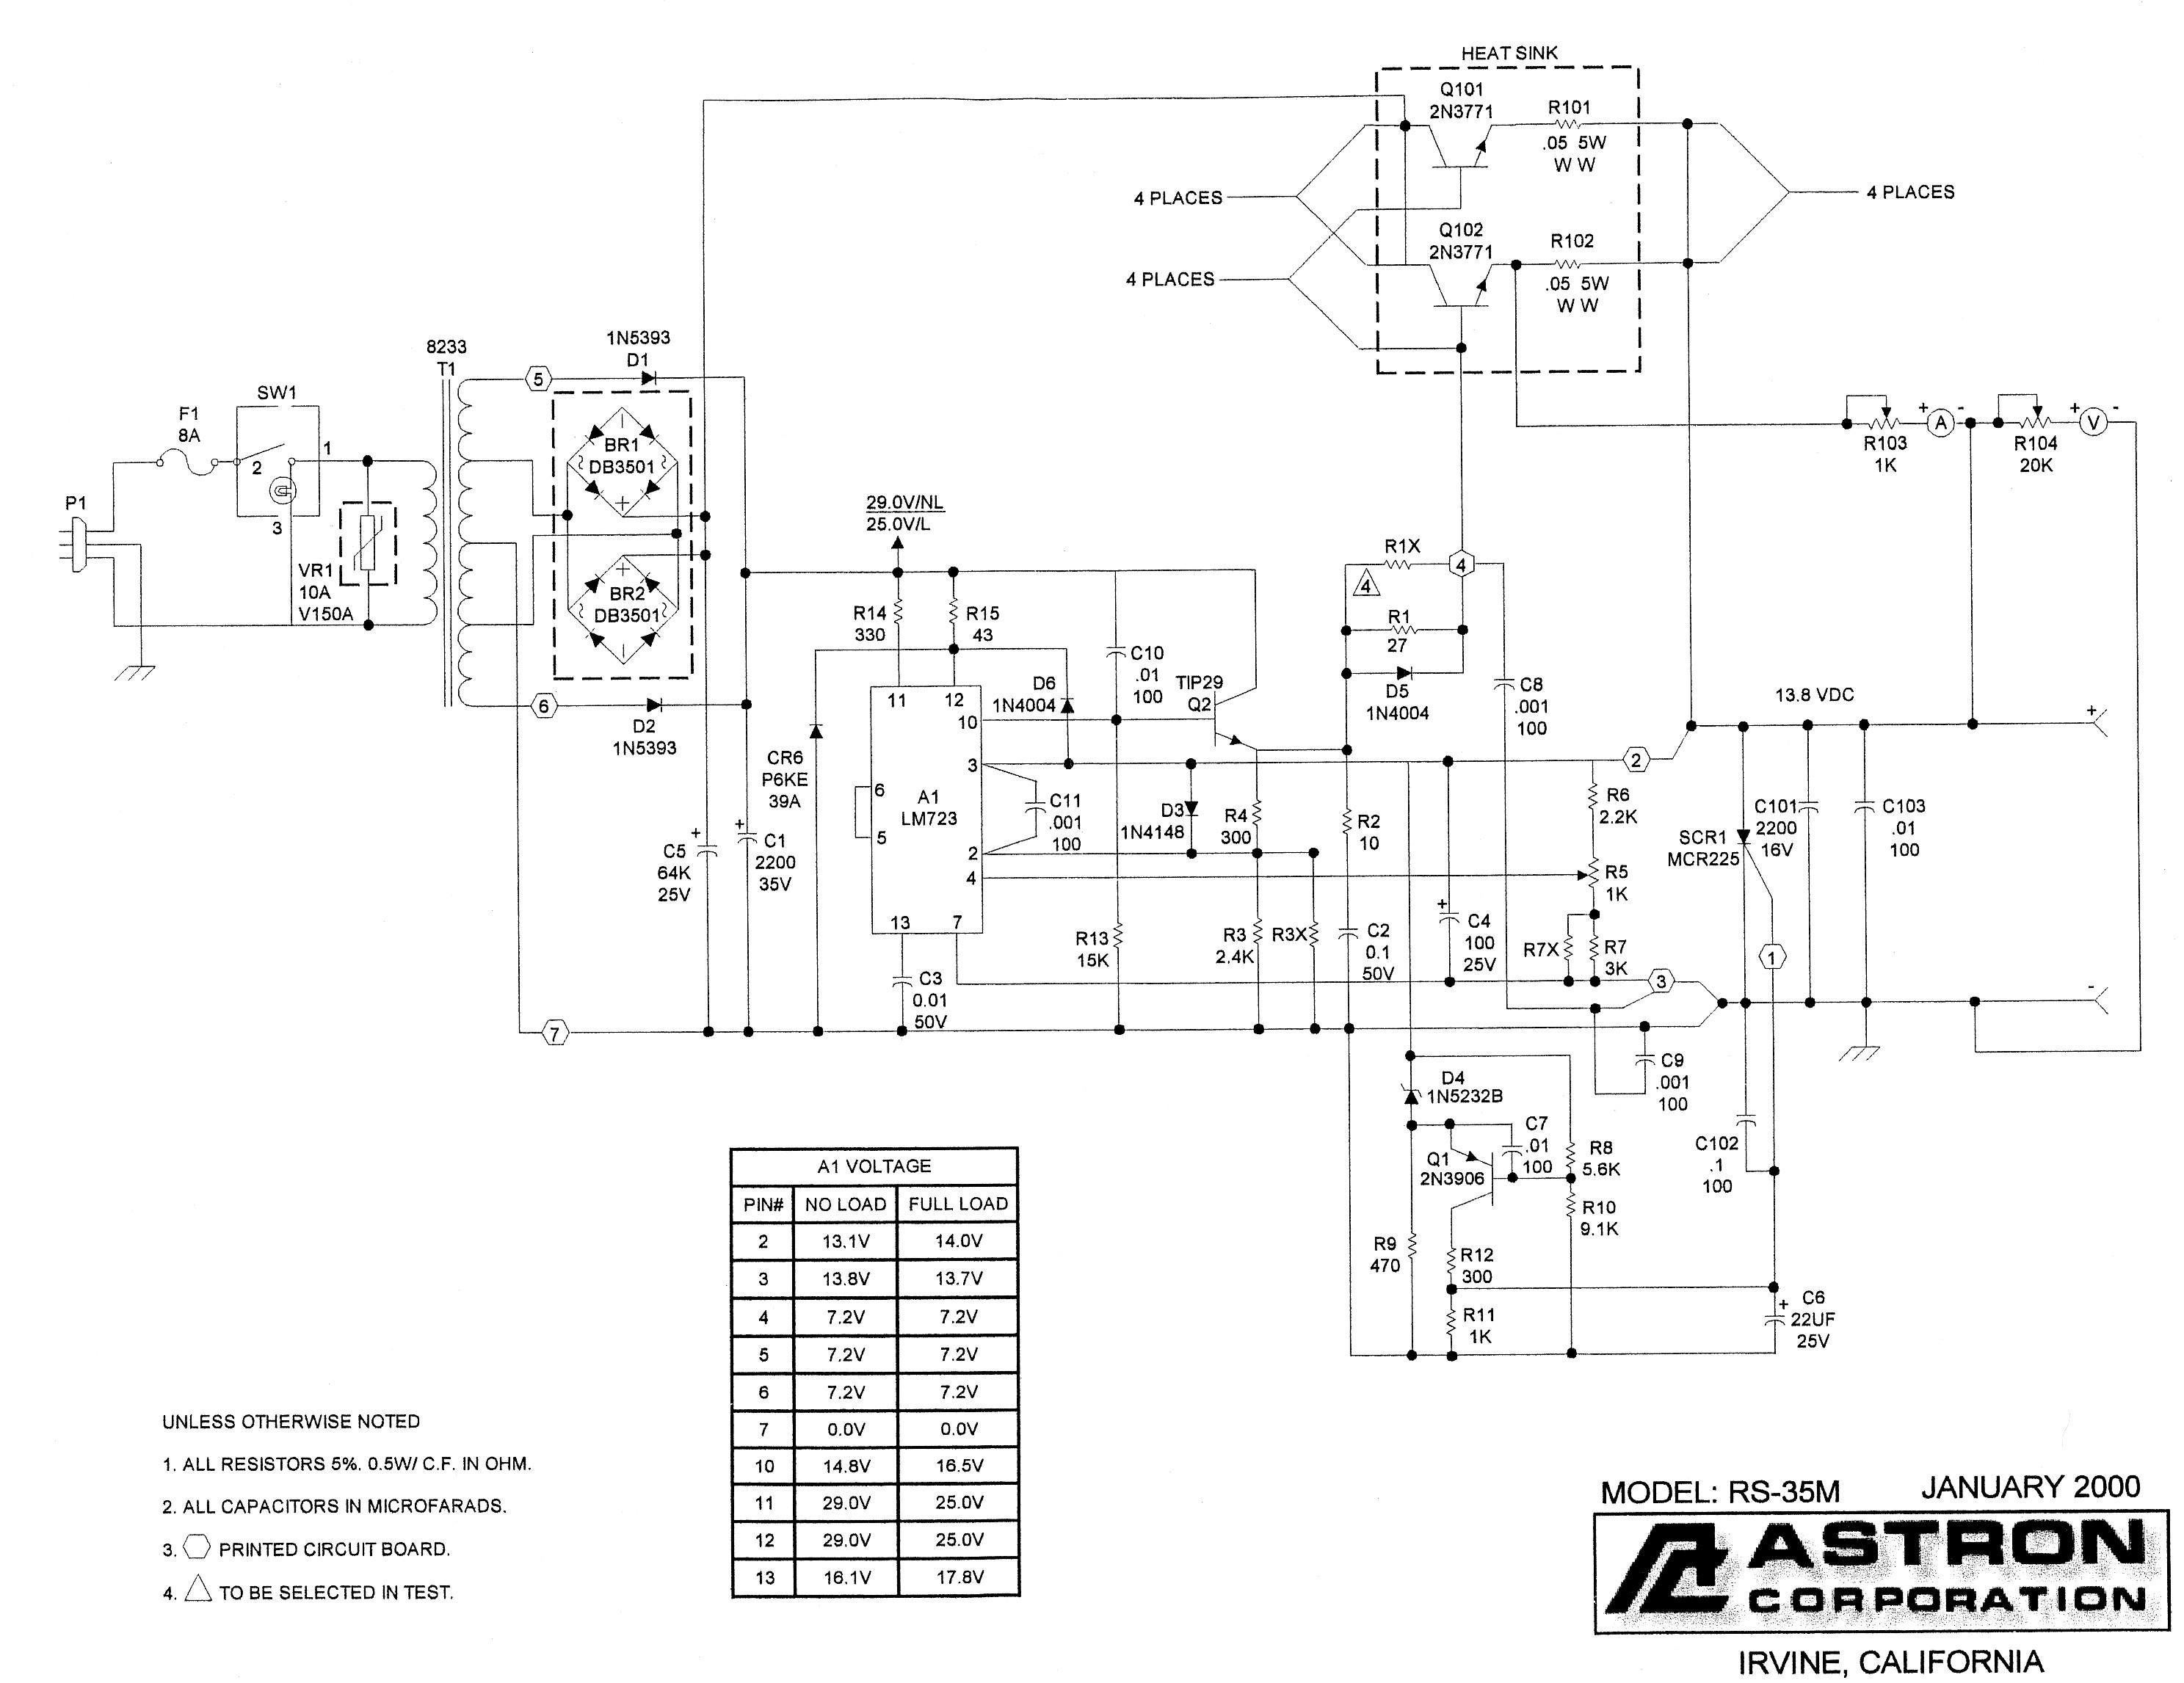 ASTRON RS-35M MANUAL PDF